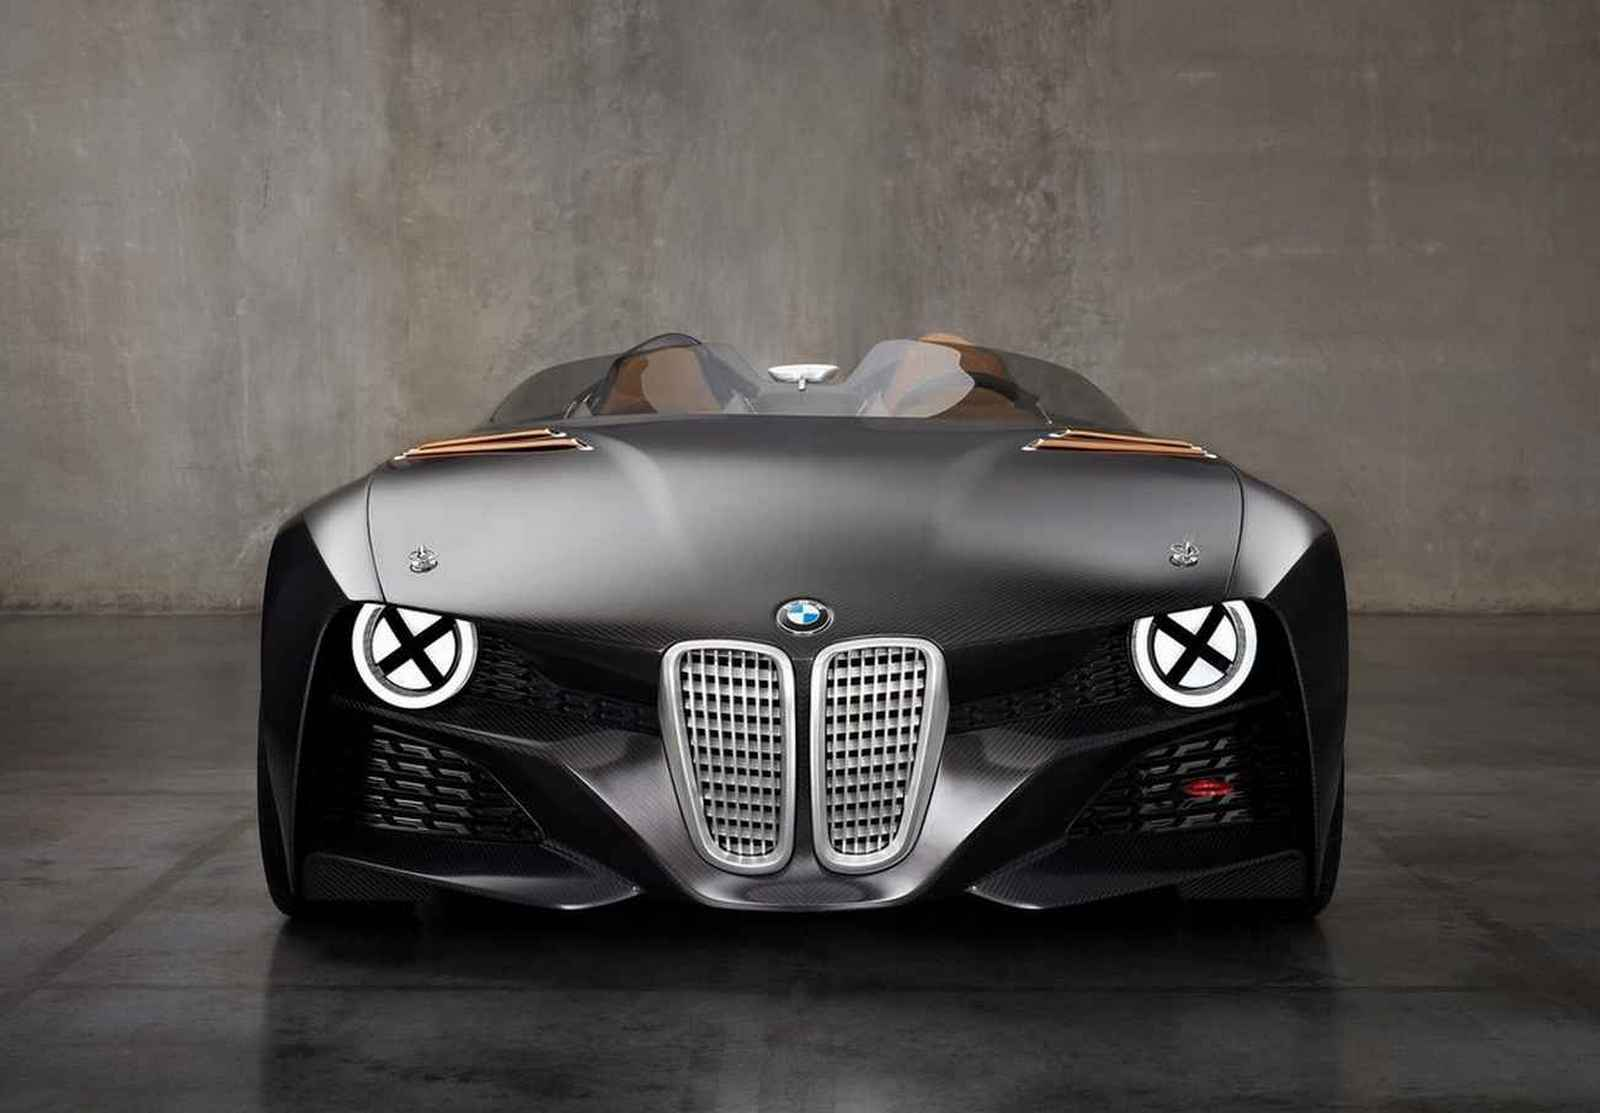 pictures of latest bmw cars - the best famous bmw 2017